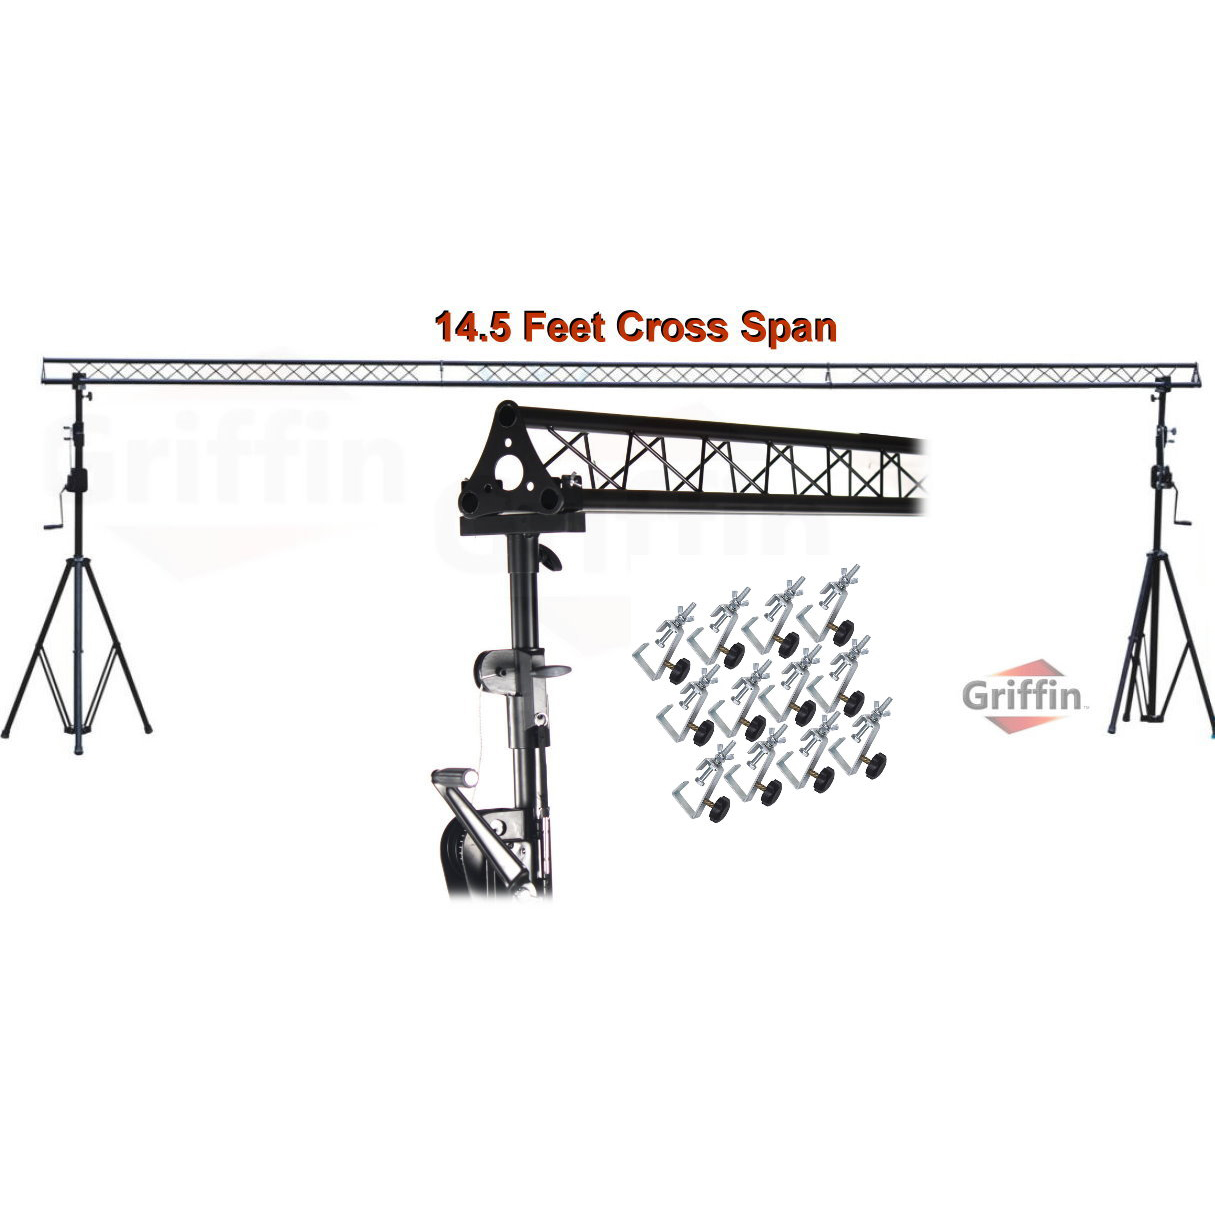 Stage Up crank up triangle truss light stand system dj lighting trussing